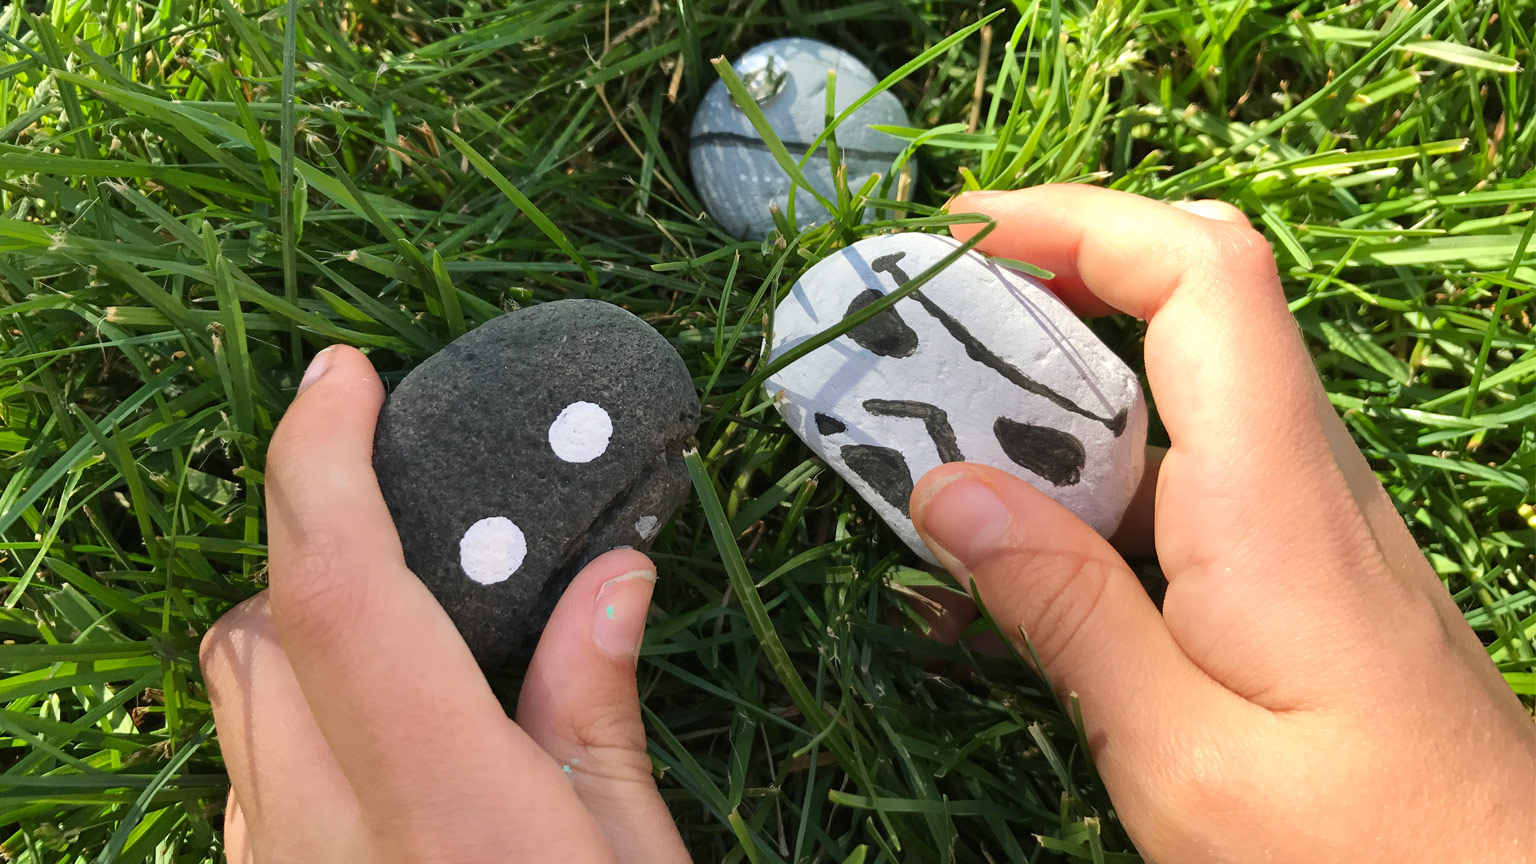 The Time to Paint These Star Wars Rocks is Now | StarWars.com